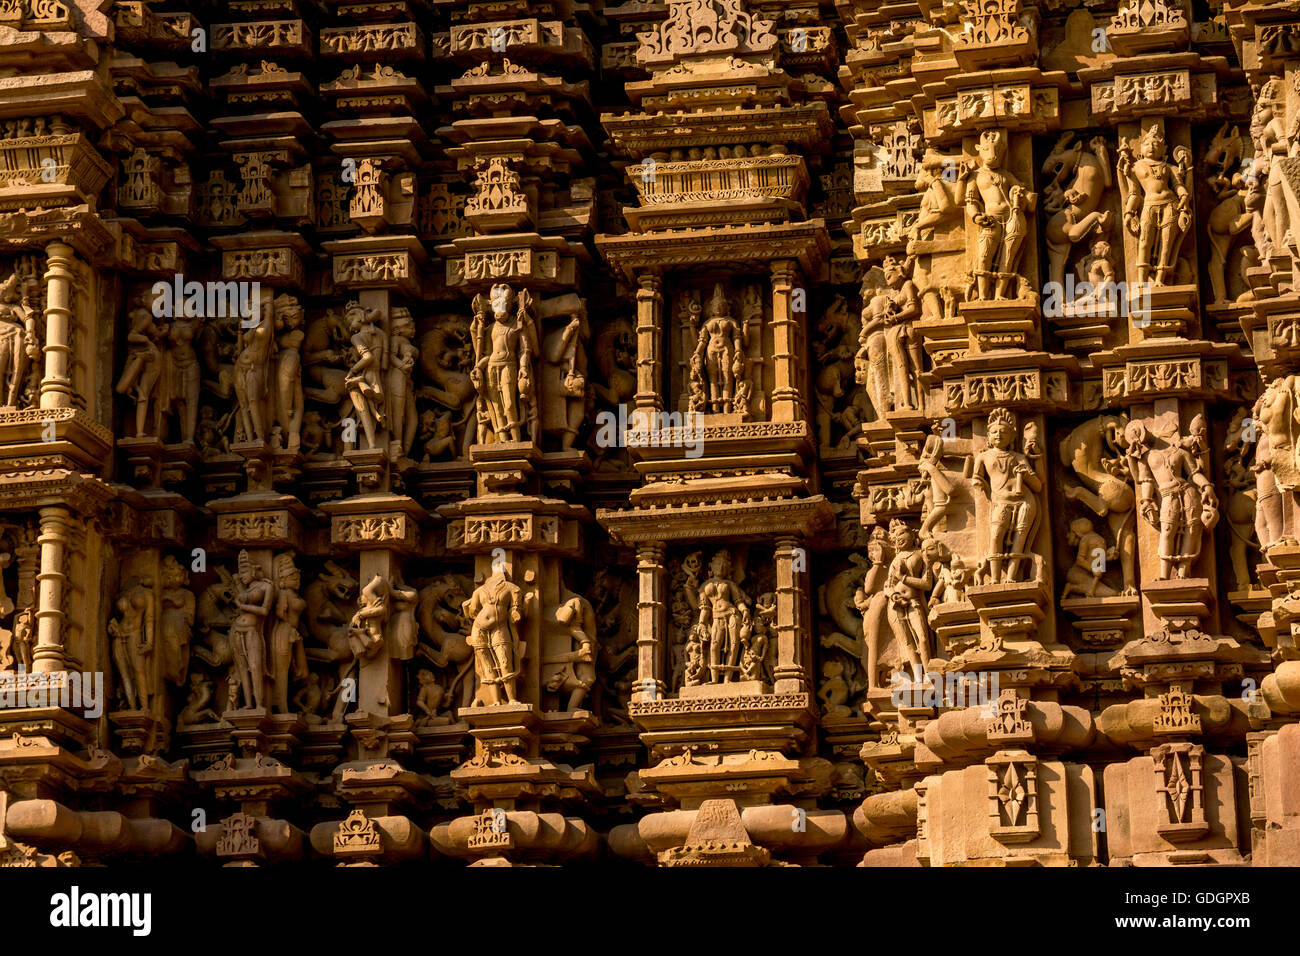 Intricate stone sculpture detail of a temple khajuraho